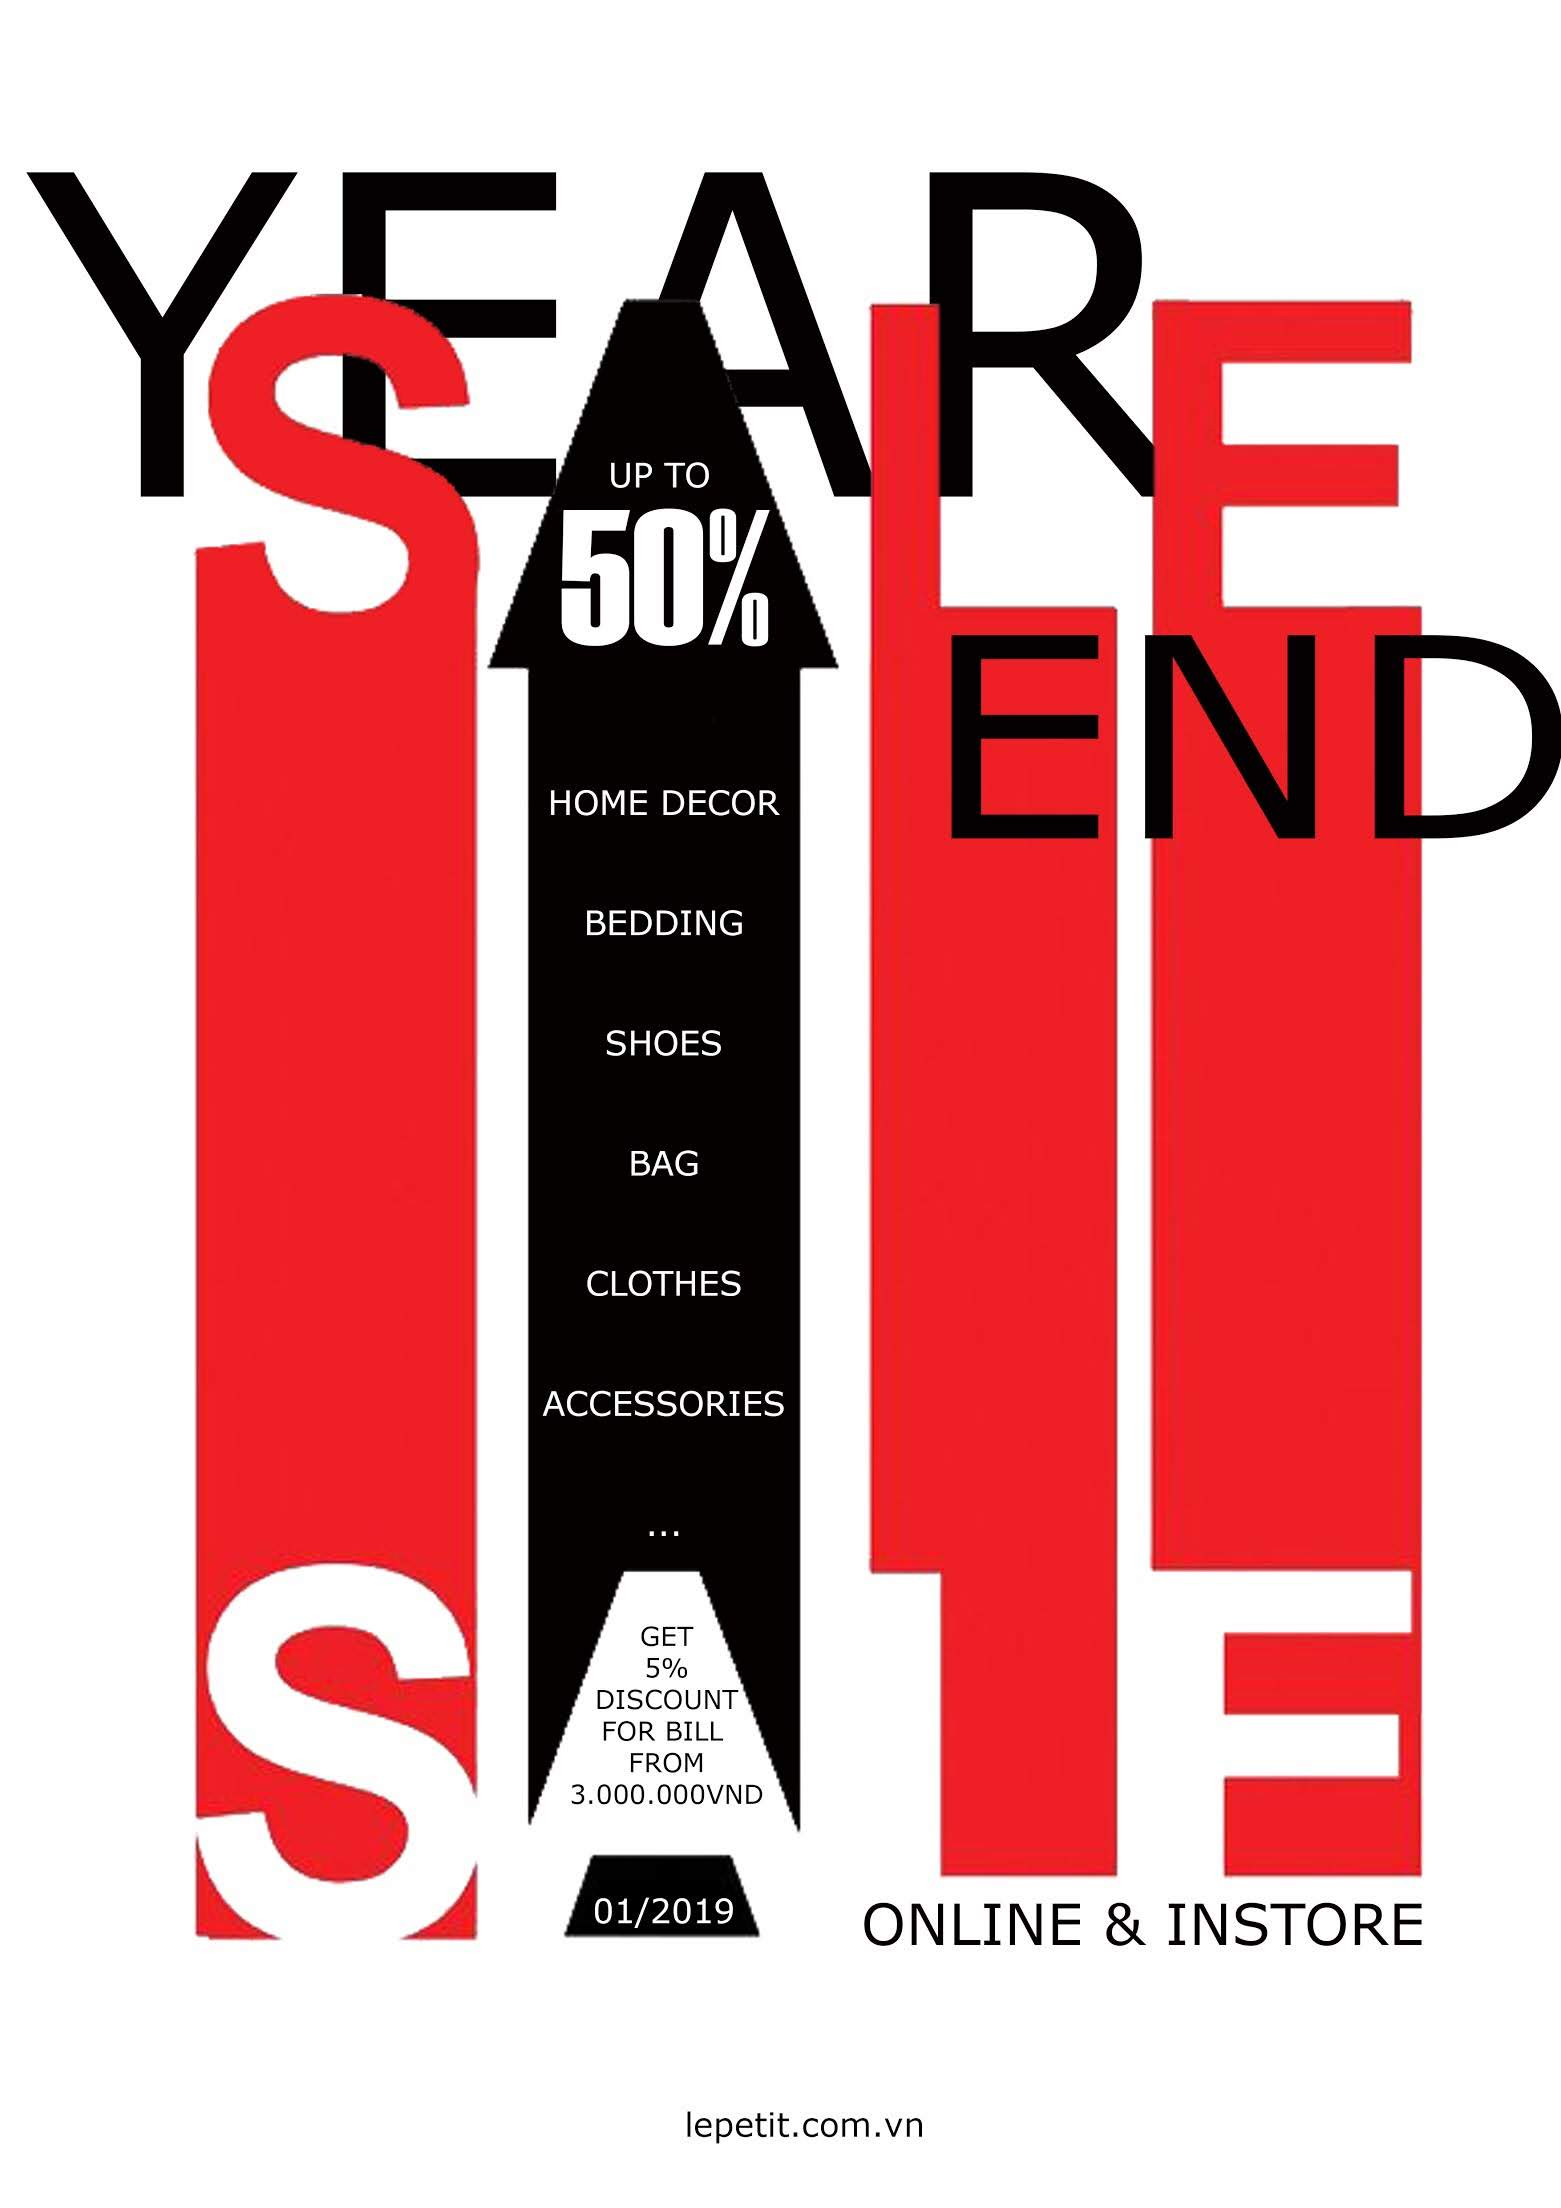 YEAR-END SALE 2018